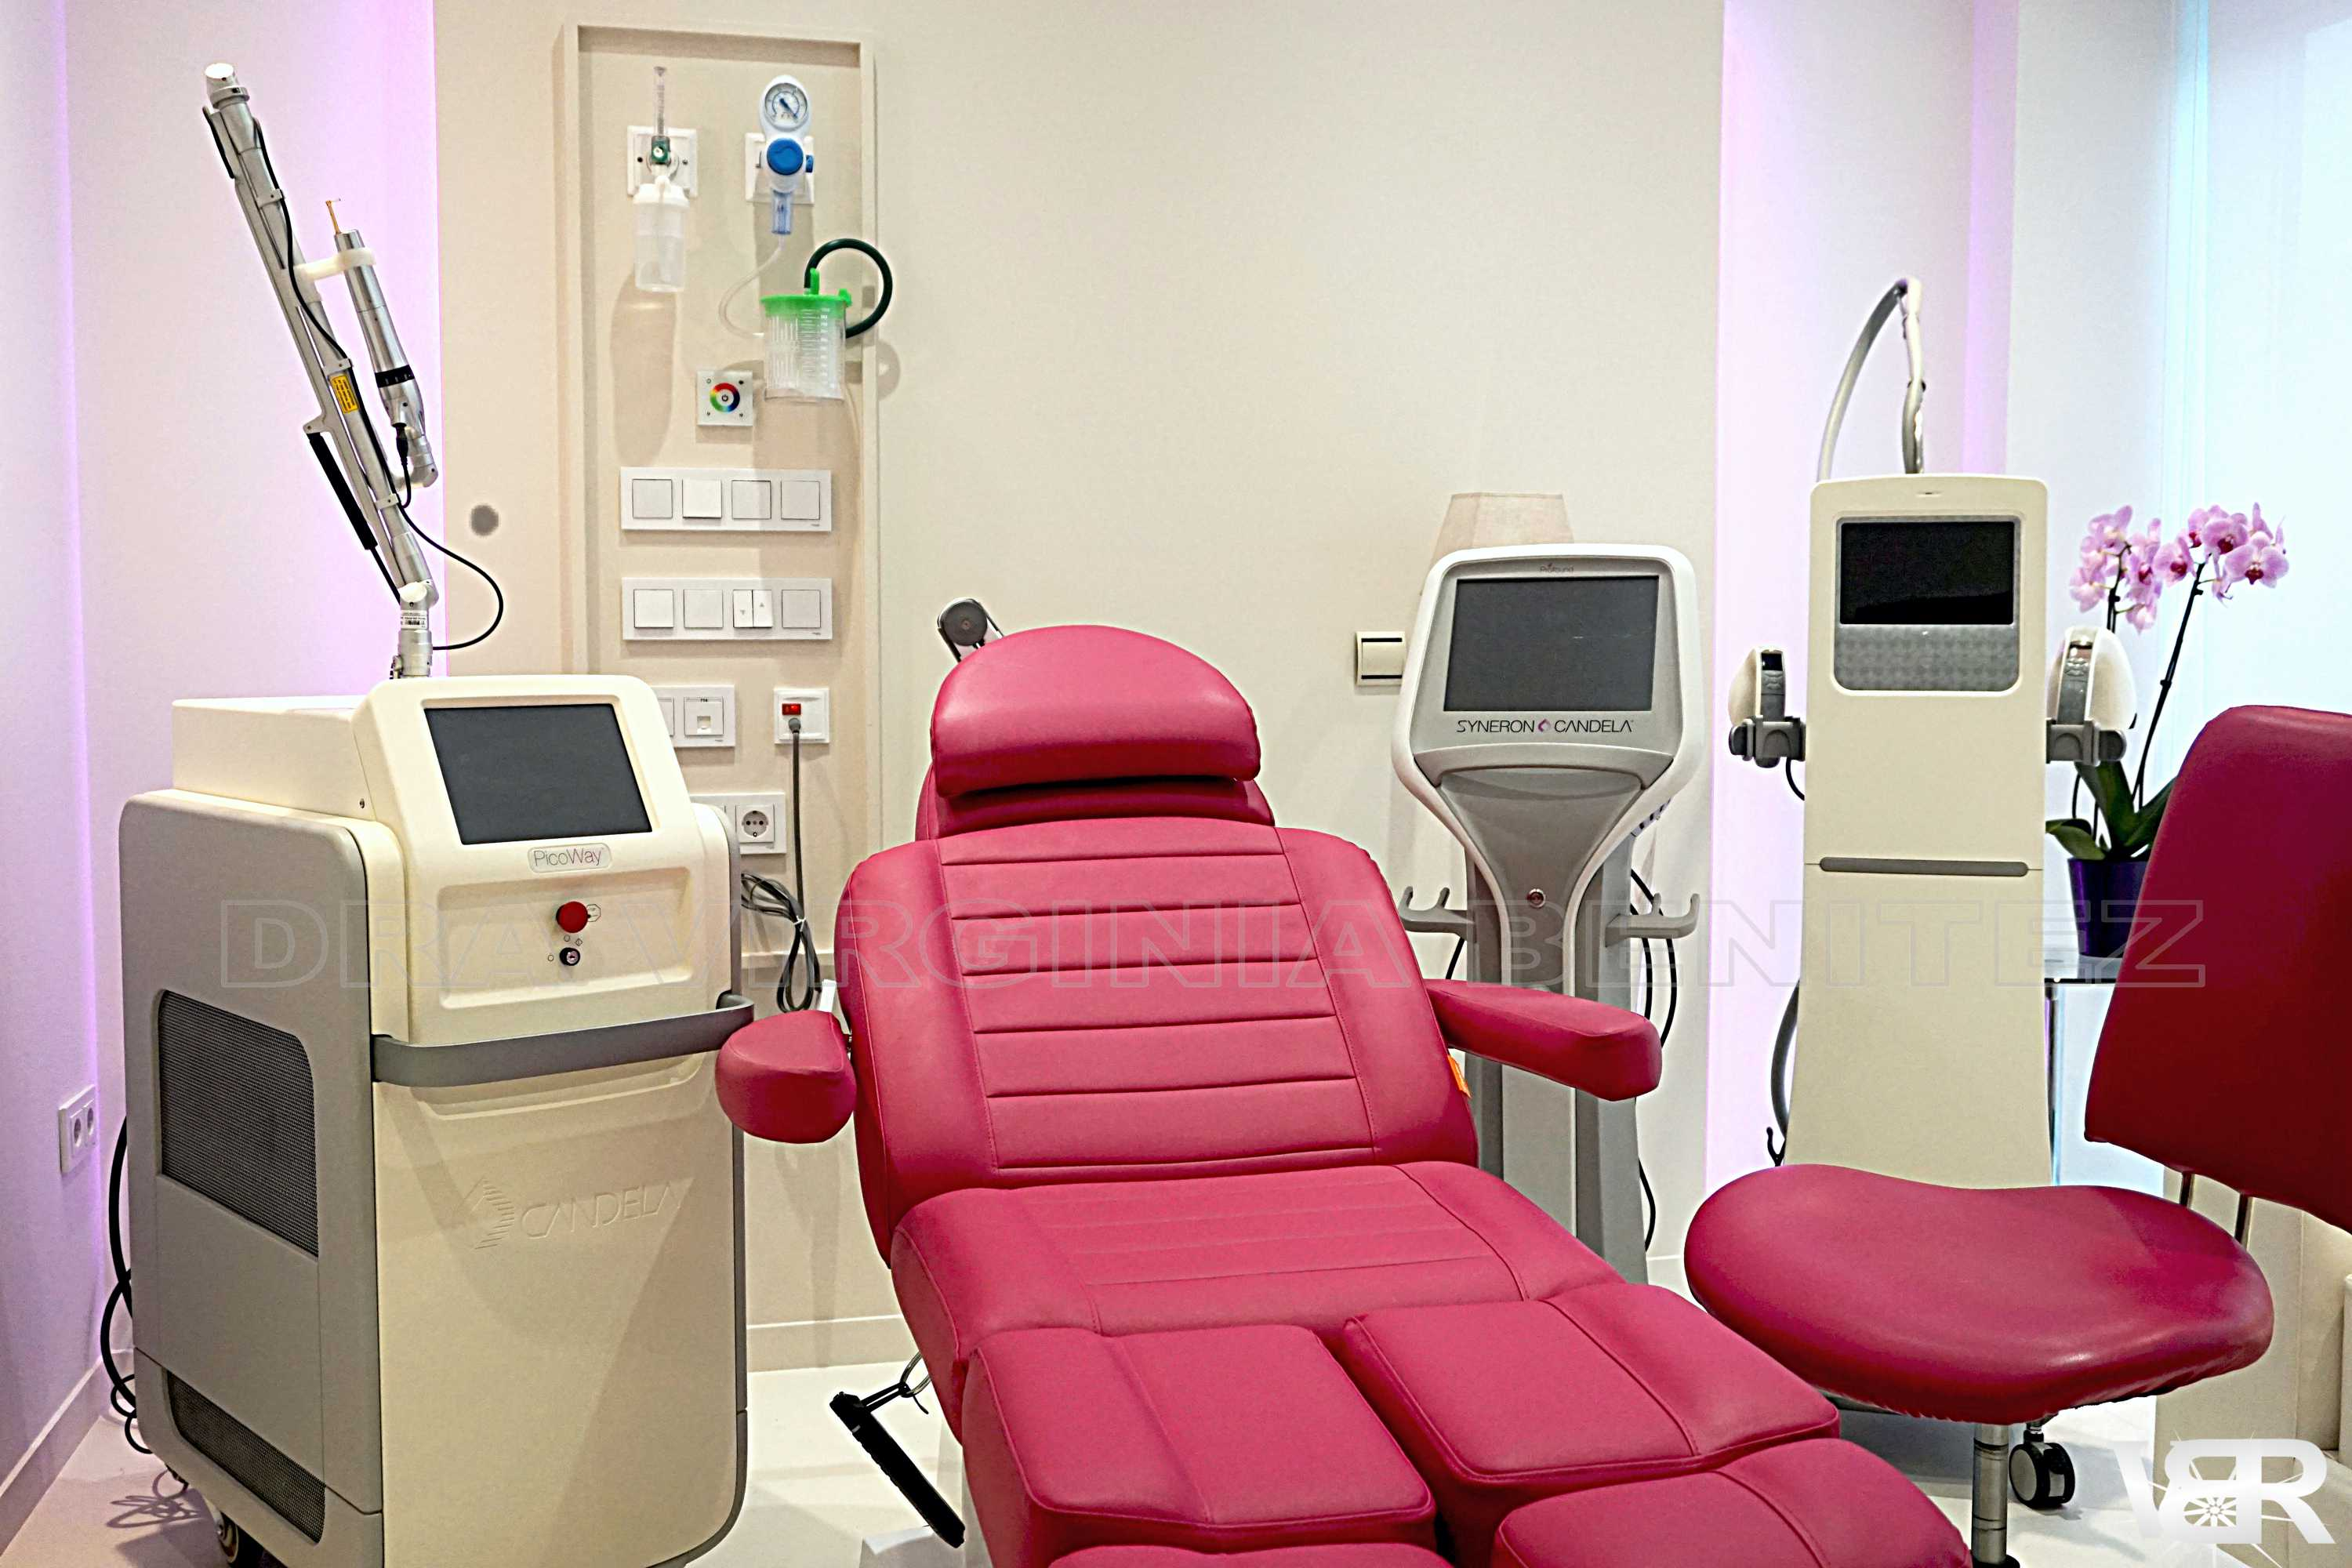 Advance Aesthetic Equipment Marbella